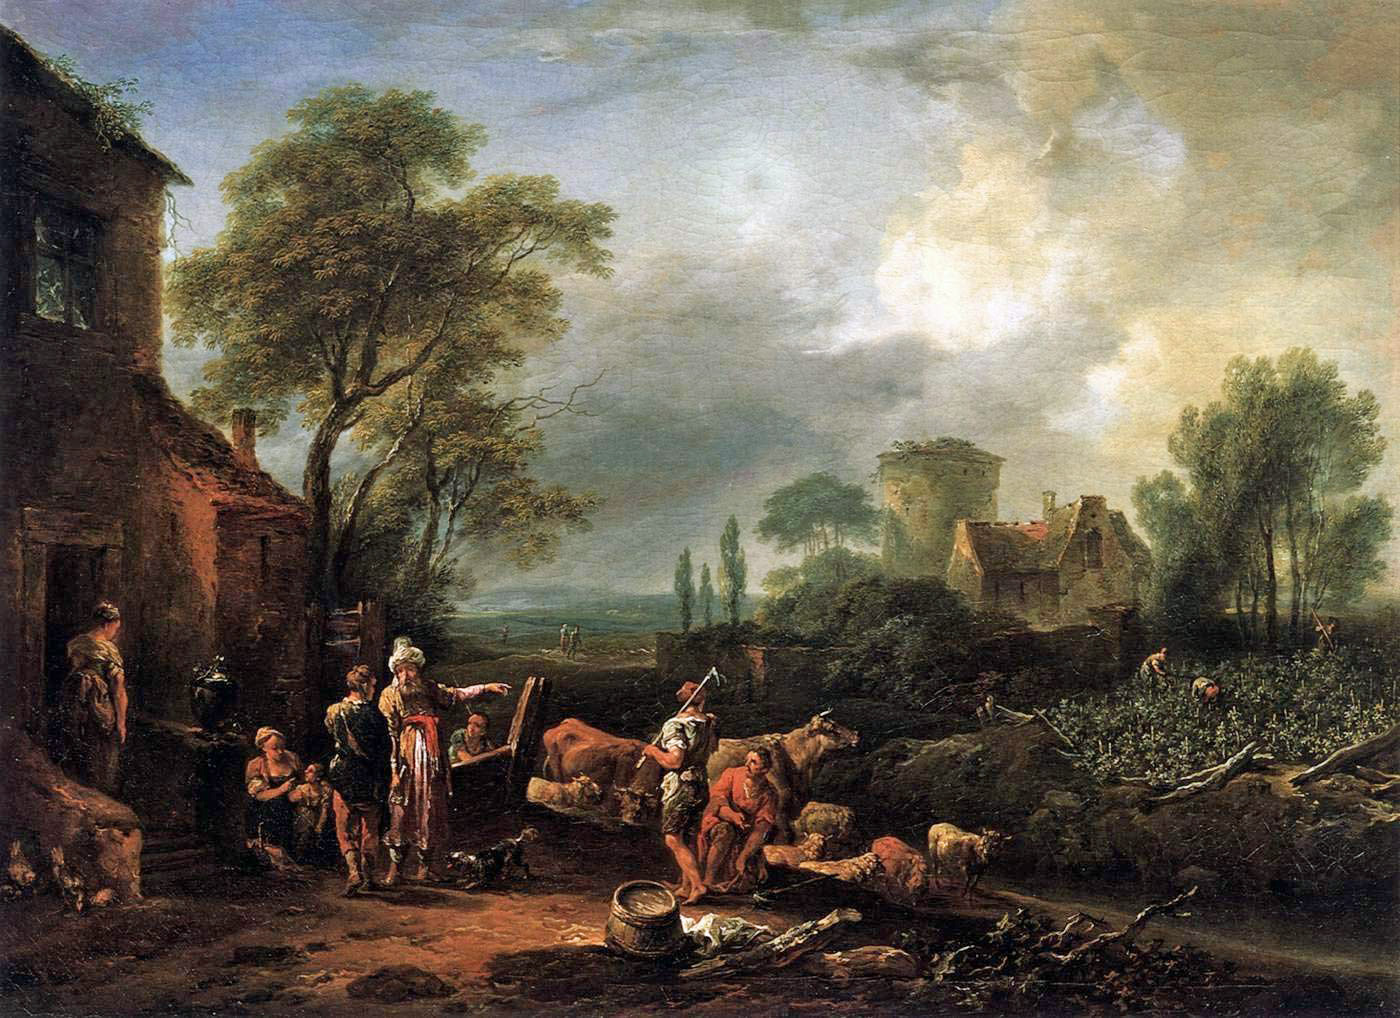 The parable of the workers in the vineyard by Austrian painter Johann Christian Brand (1722-1795).